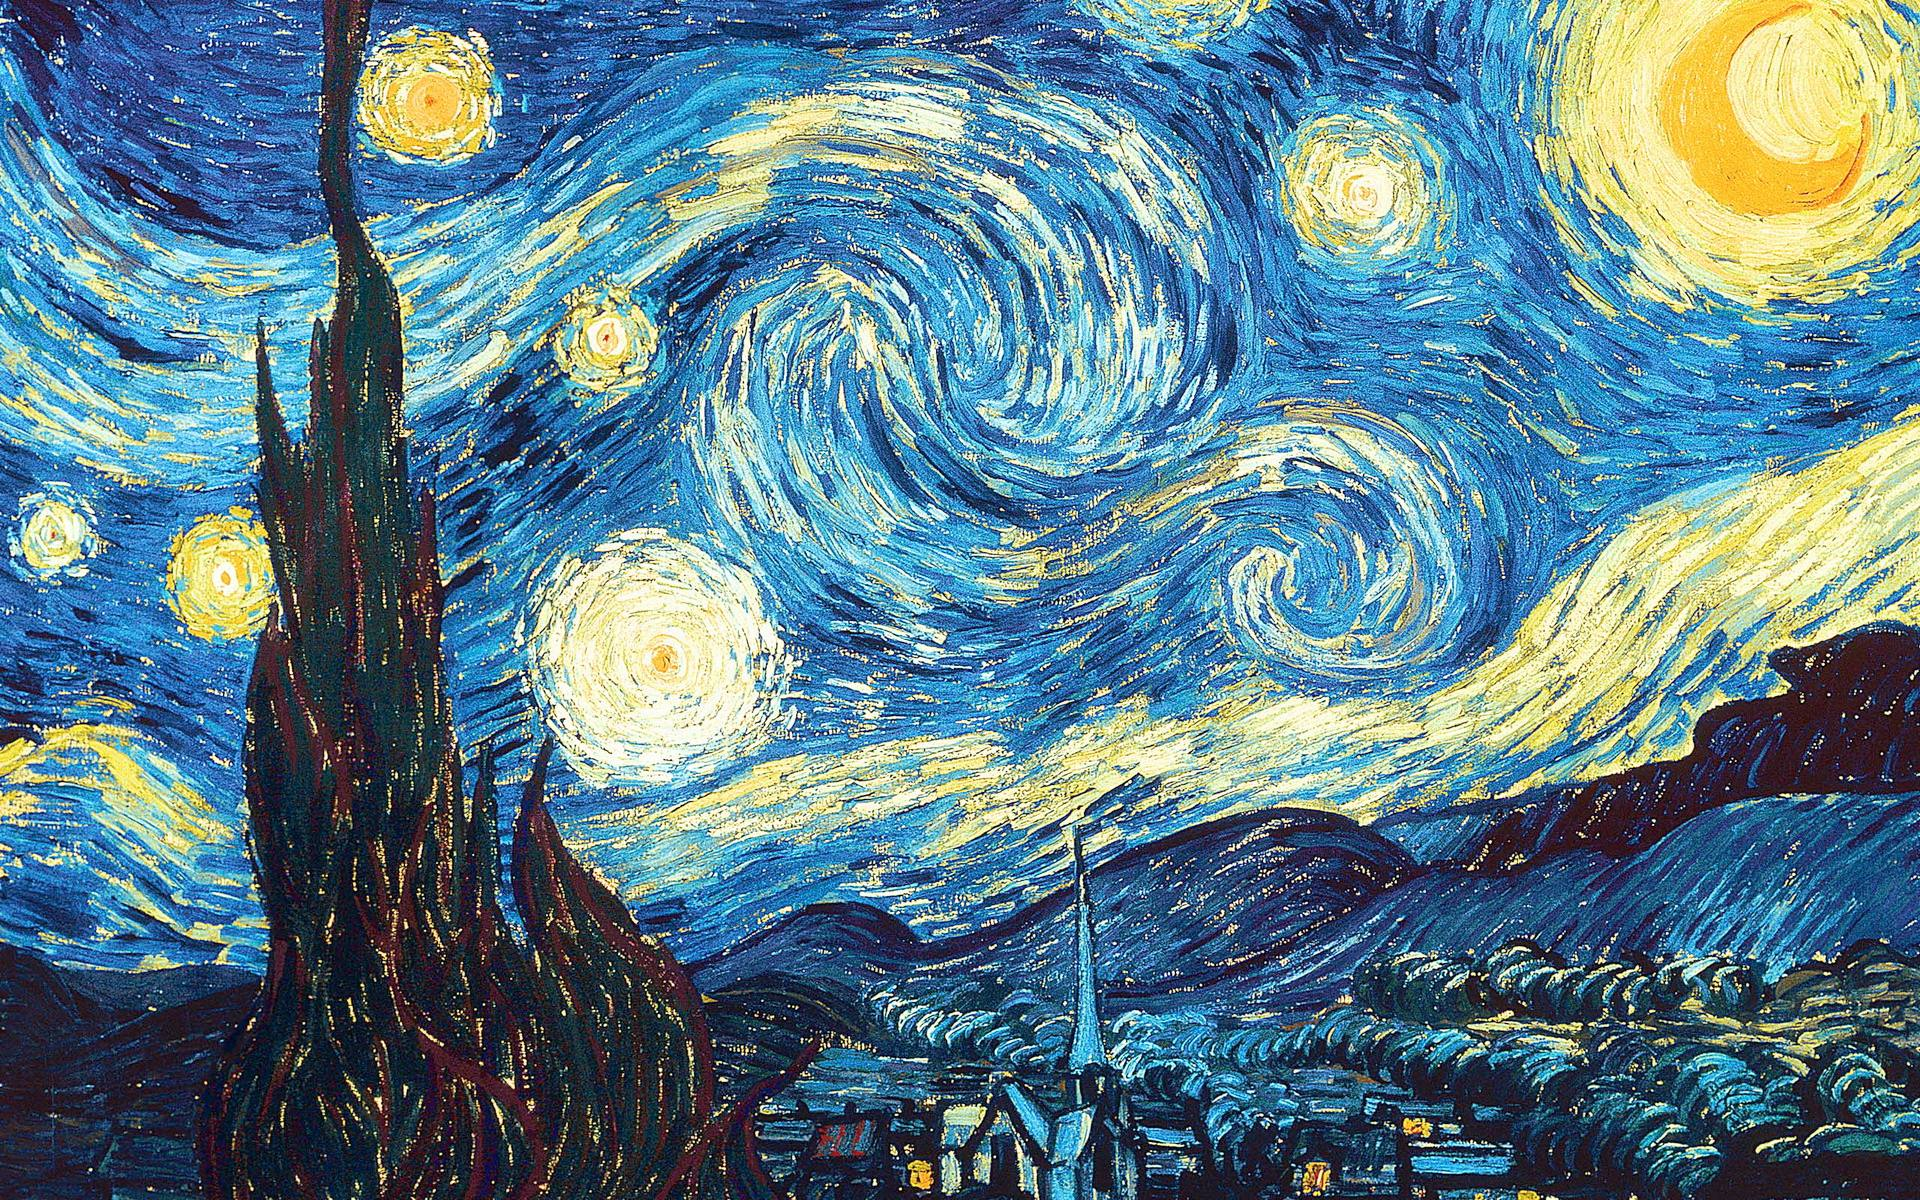 Starry Night Hd Wallpaper